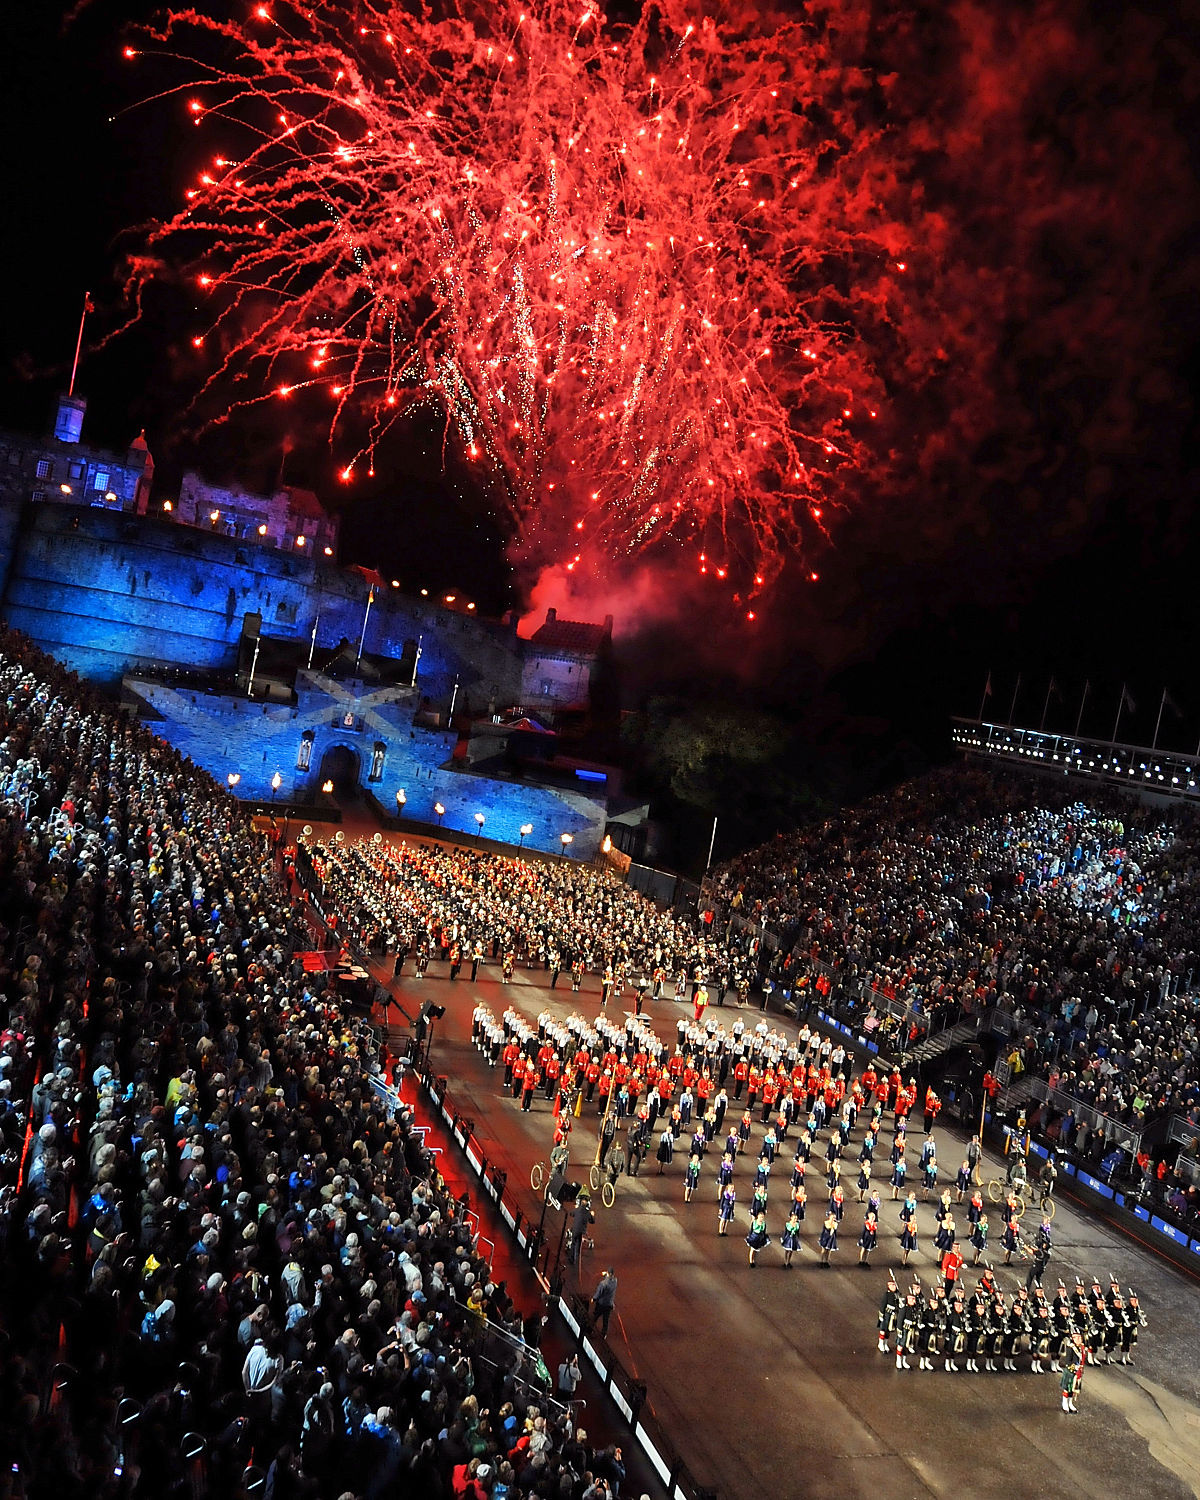 royal edinburgh military tattoo wikipedia